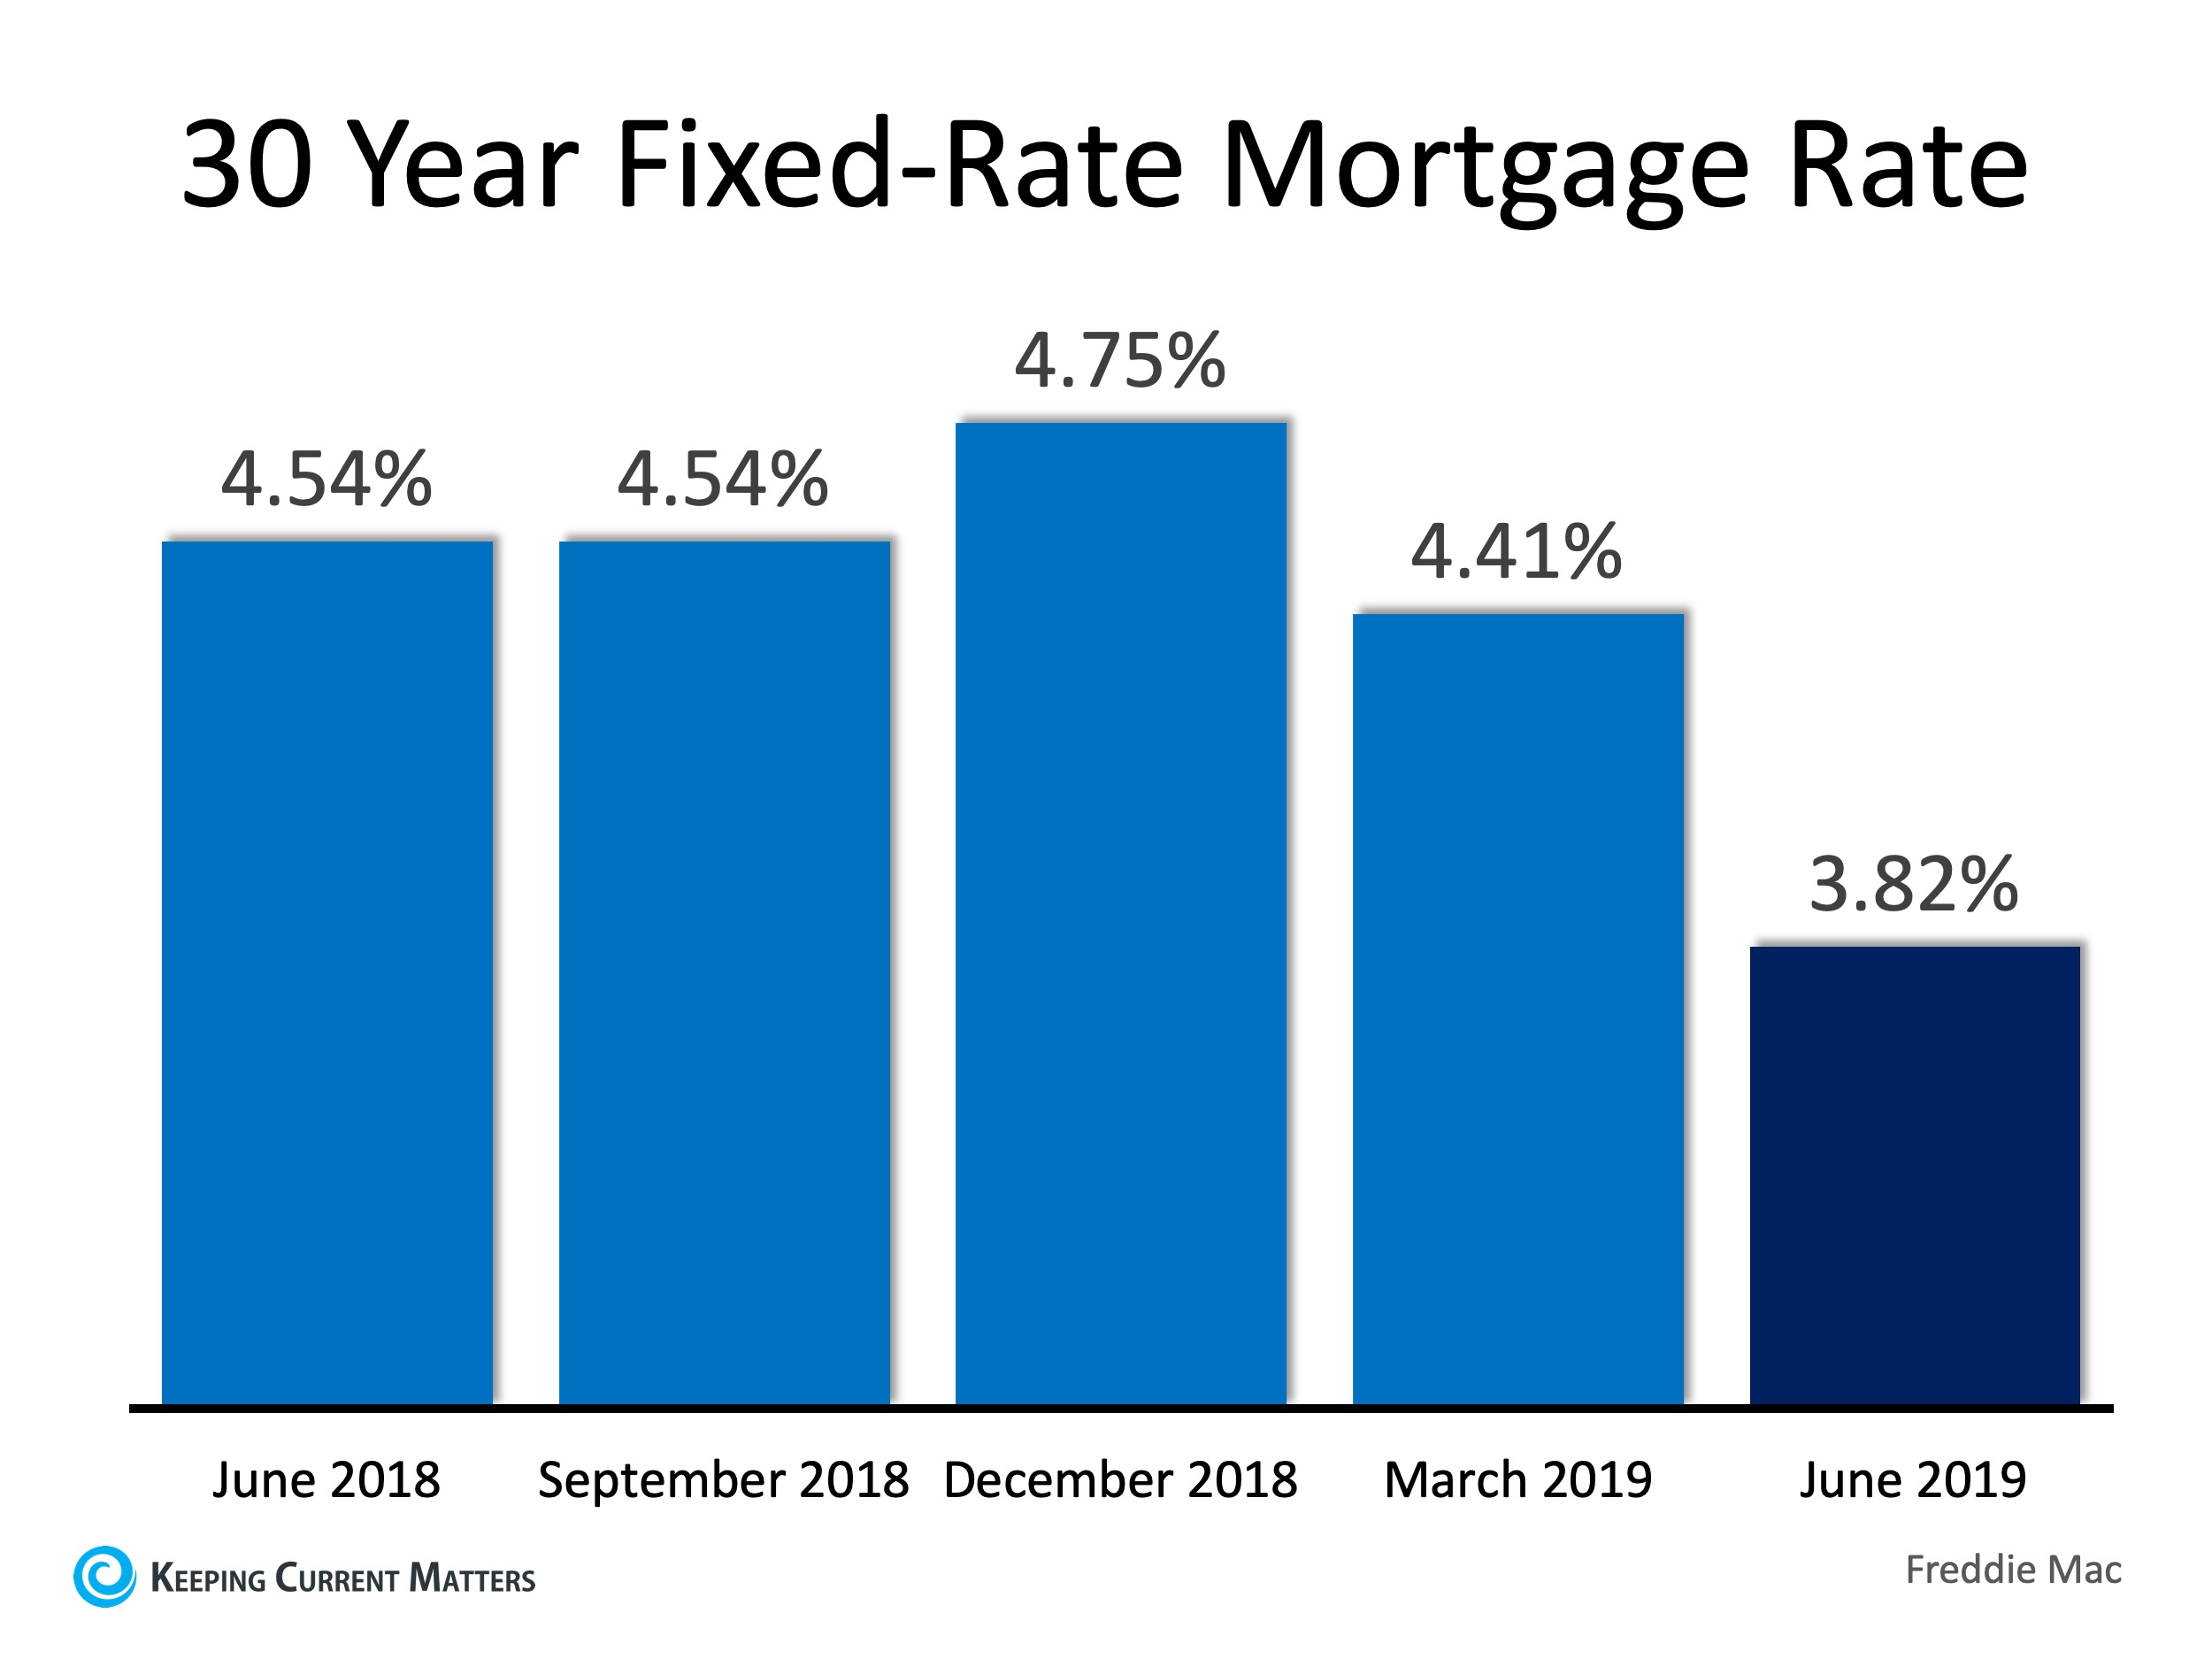 30 year fixed rate mortgage rates in June 2019